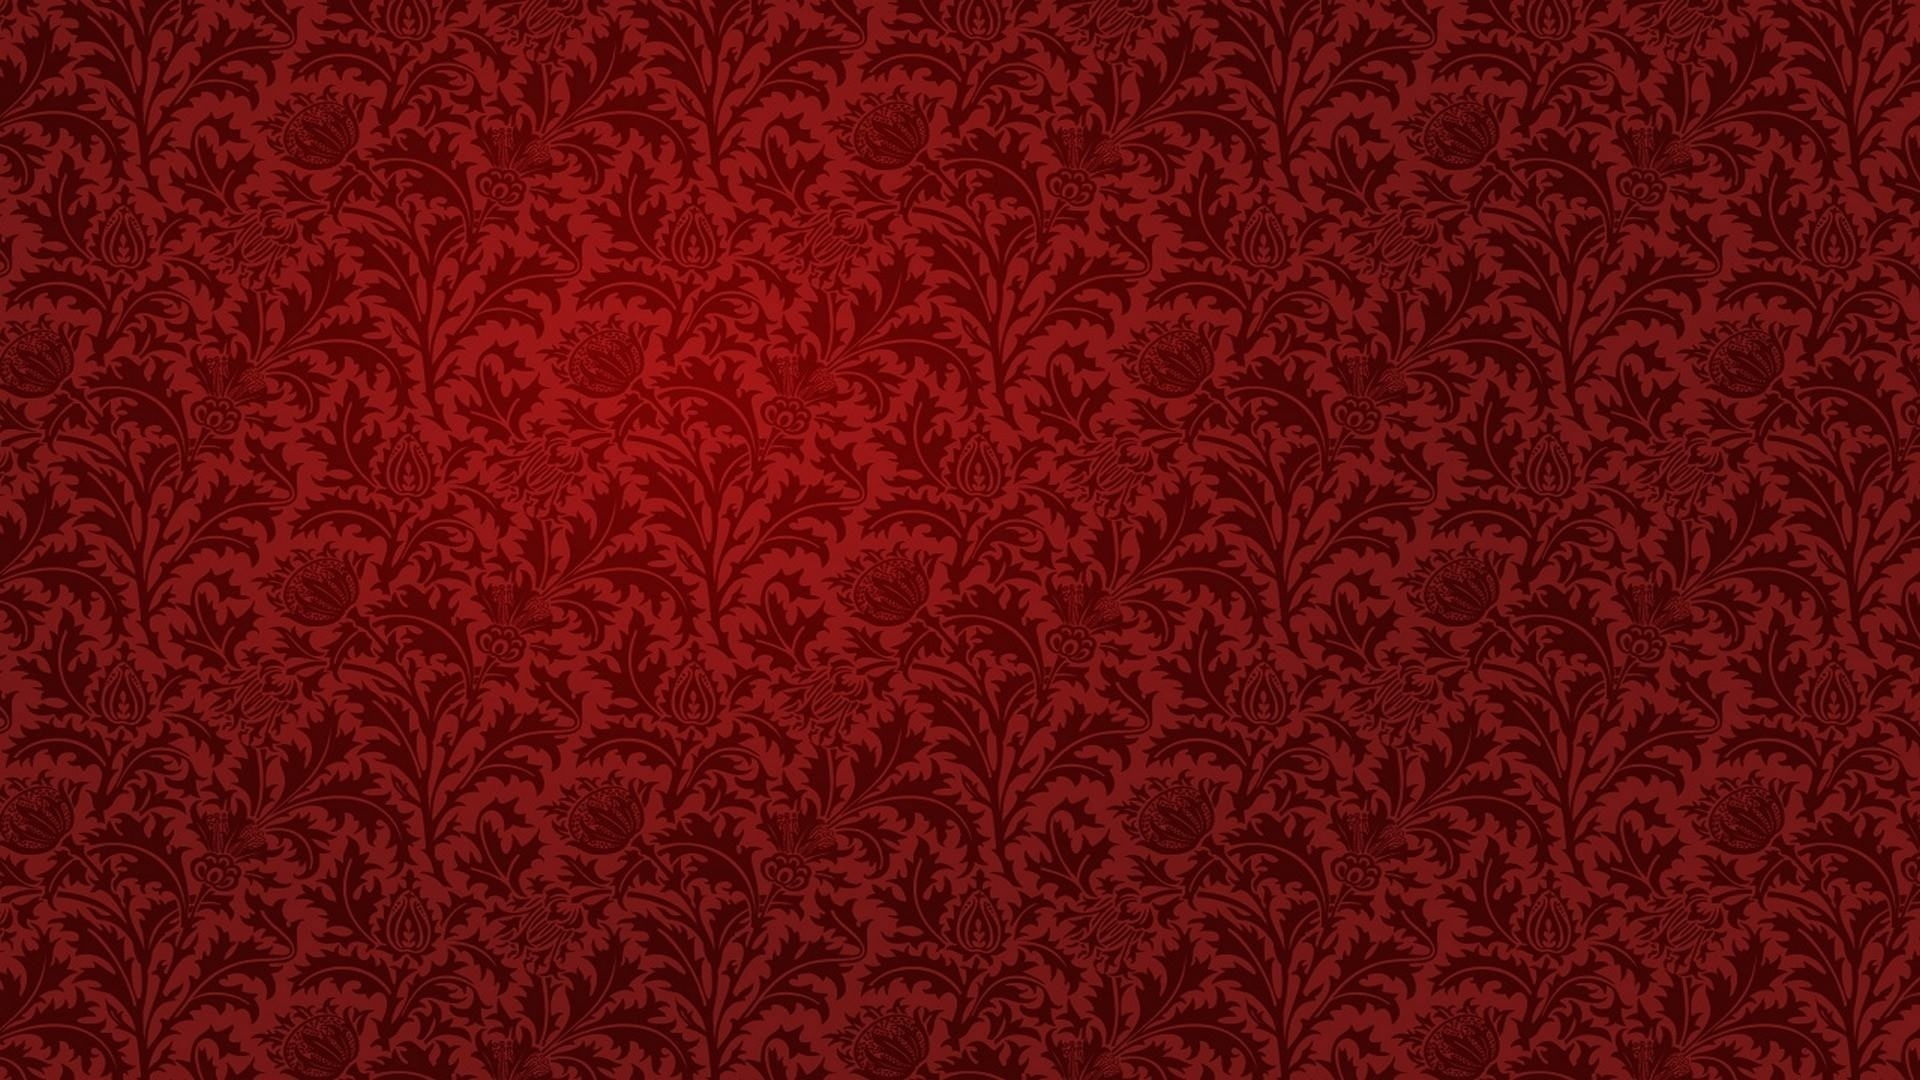 red leaves wallpaper pattern - photo #22